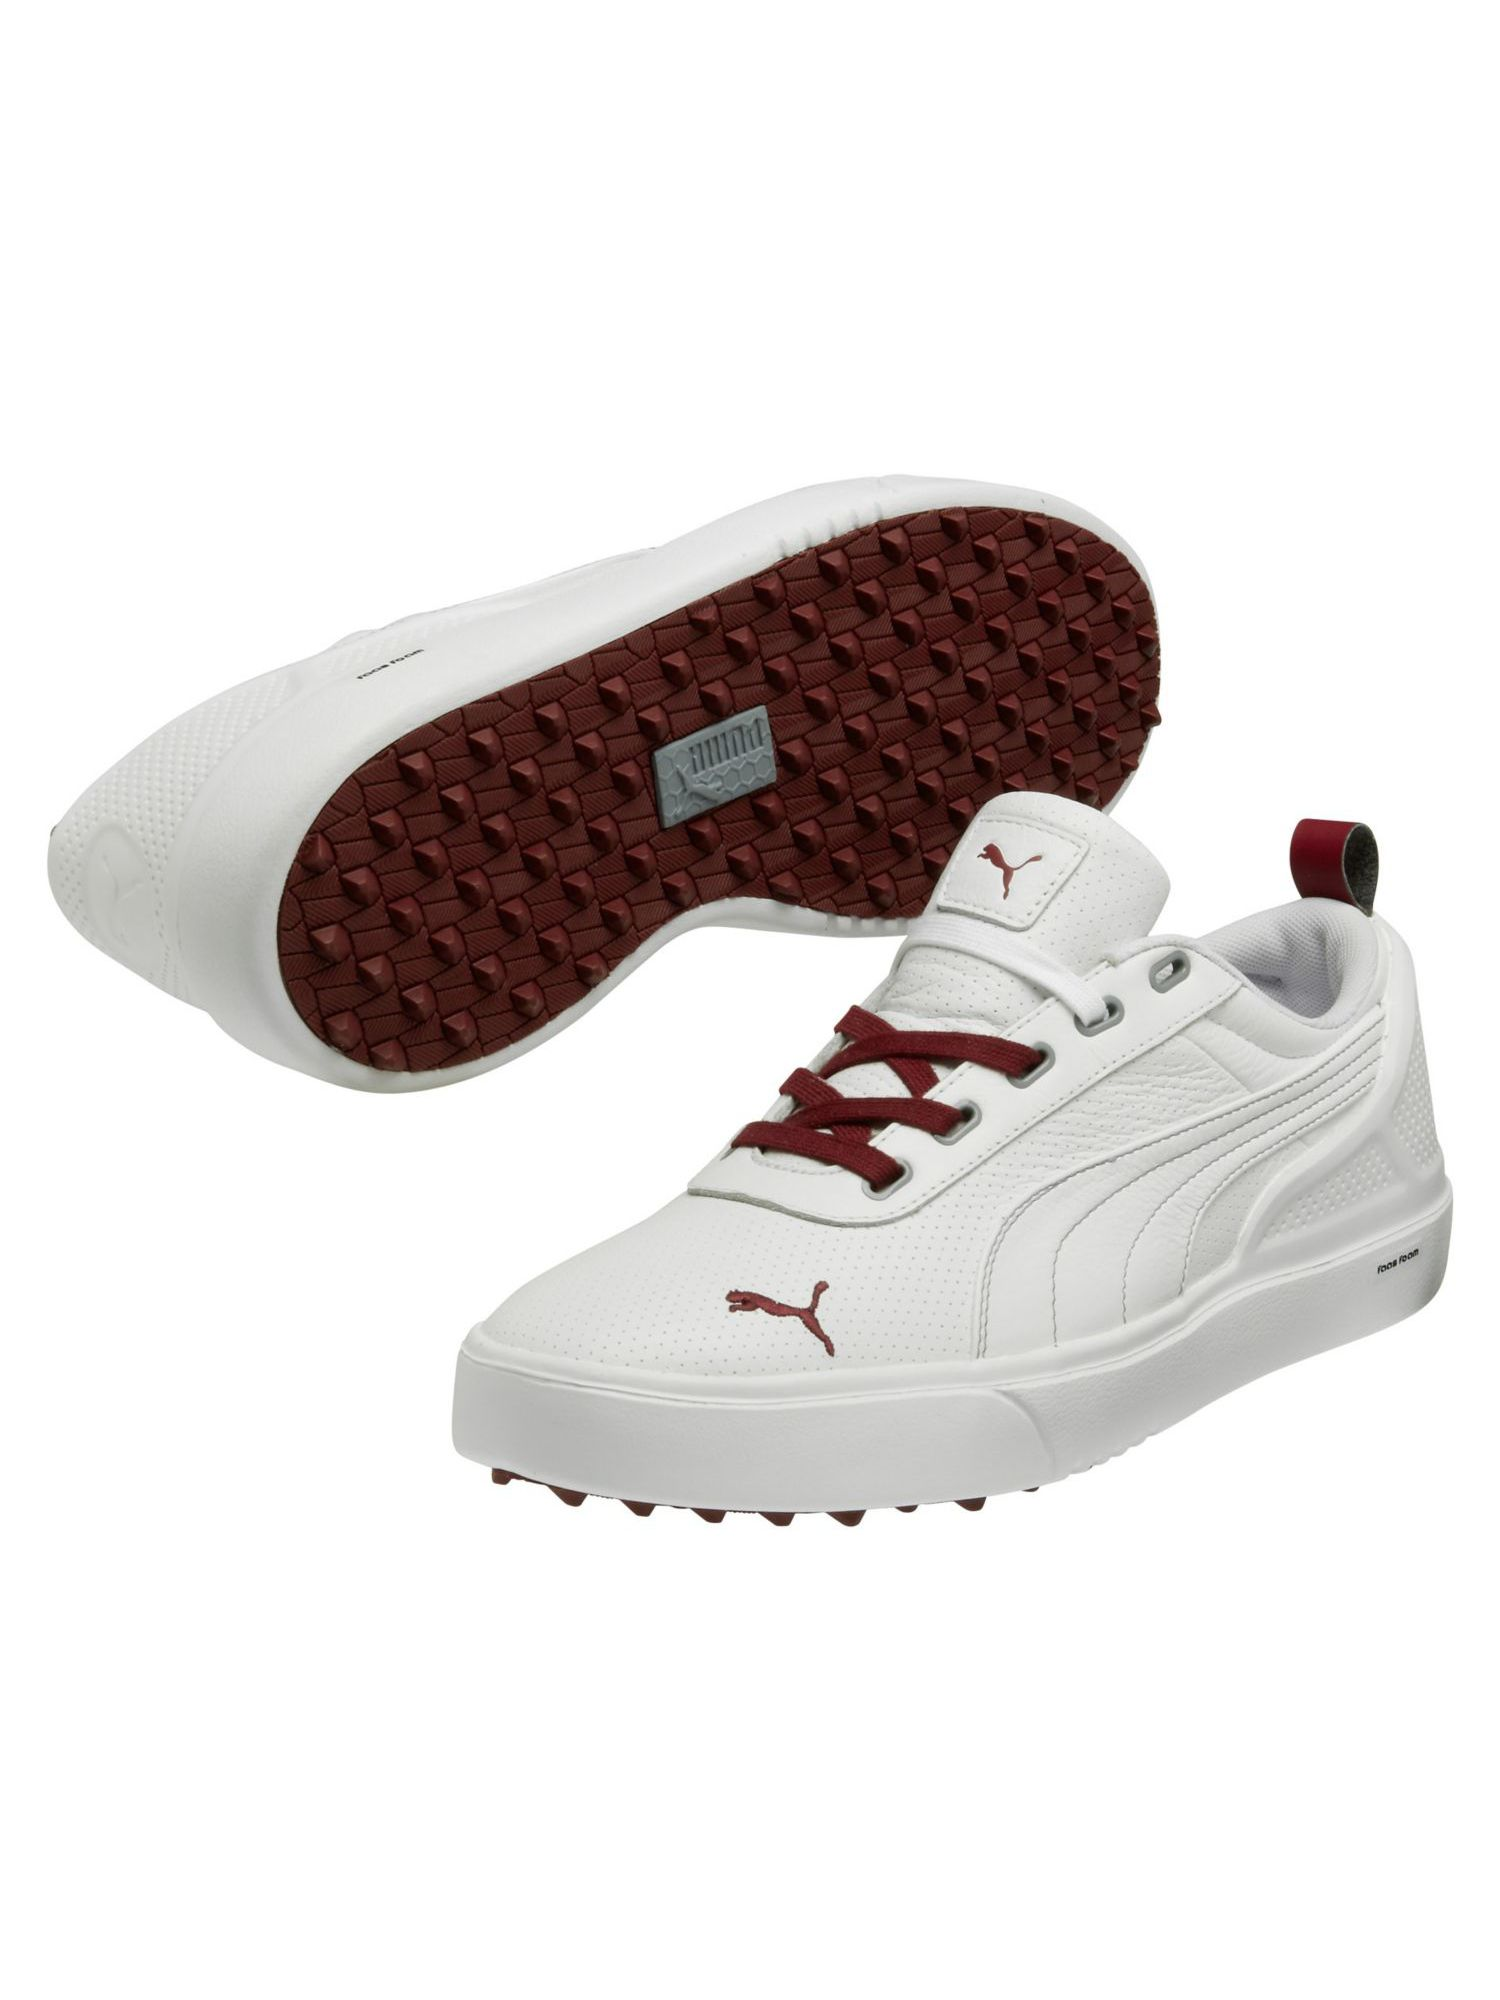 Monolite PL golf shoes